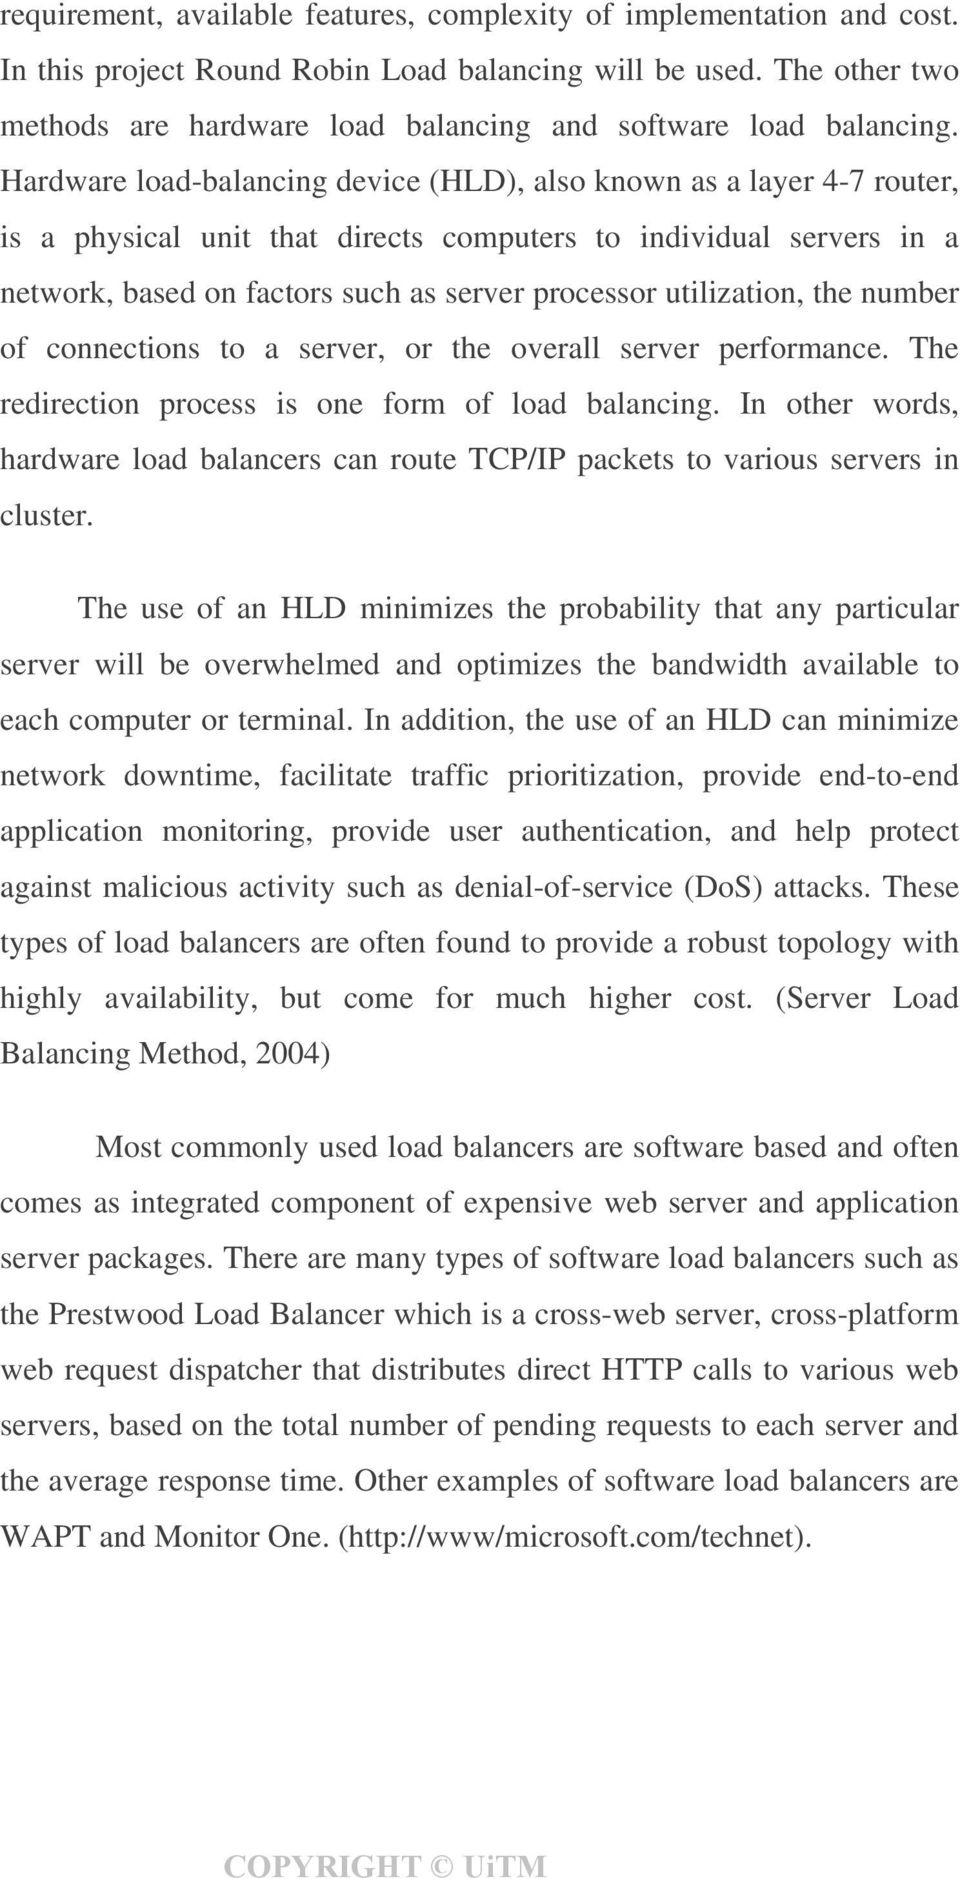 Hardware load-balancing device (HLD), also known as a layer 4-7 router, is a physical unit that directs computers to individual servers in a network, based on factors such as server processor